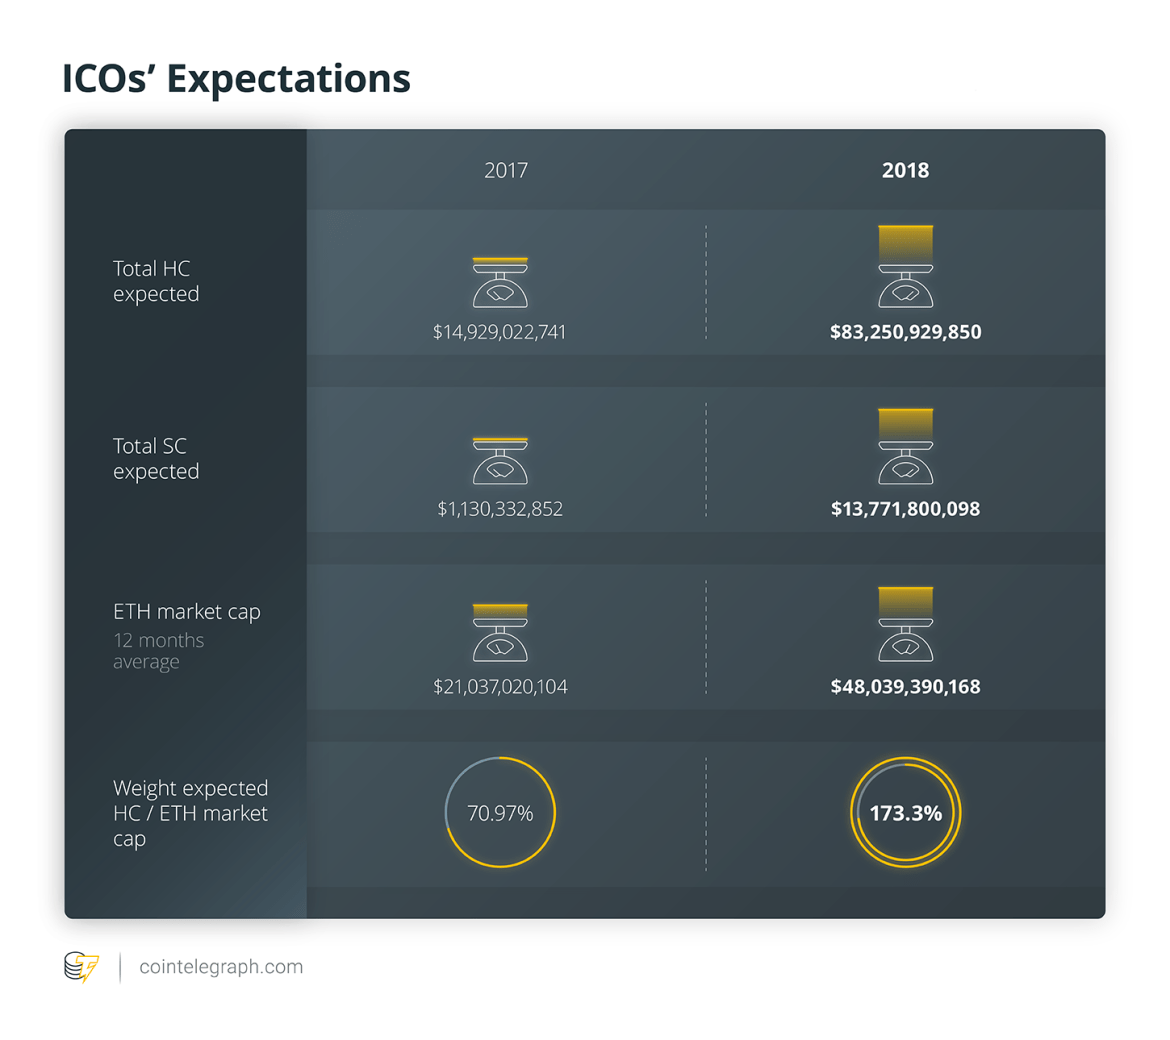 ICOs' Expectations